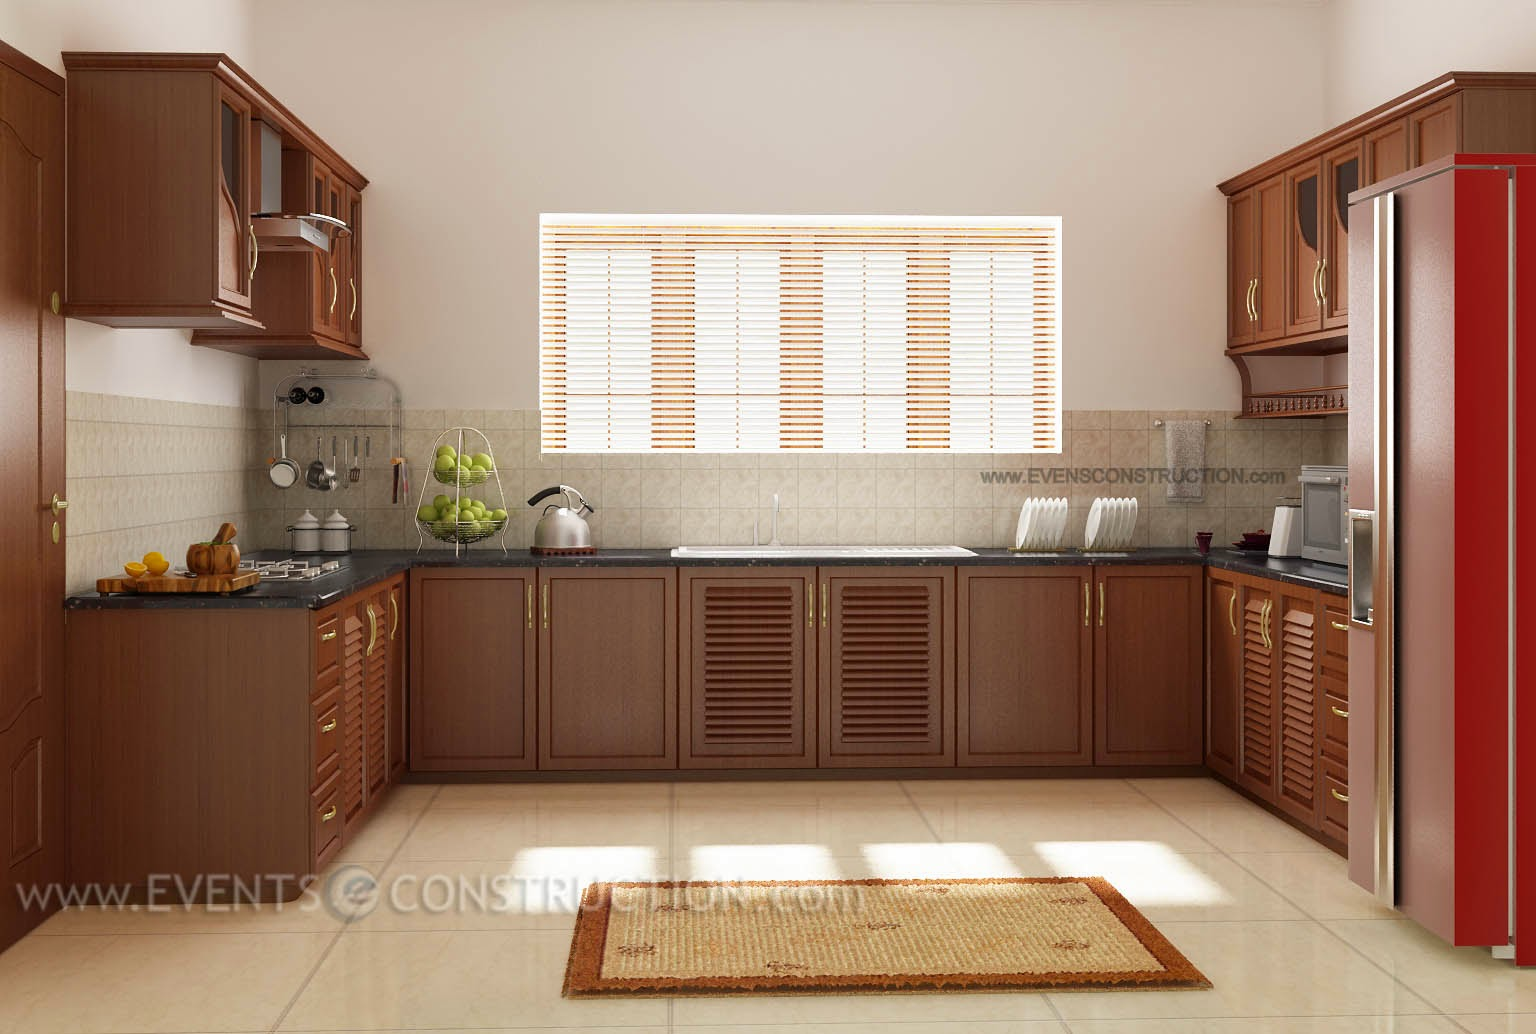 Evens construction pvt ltd interior of a kerala kitchen for Kerala style kitchen photos